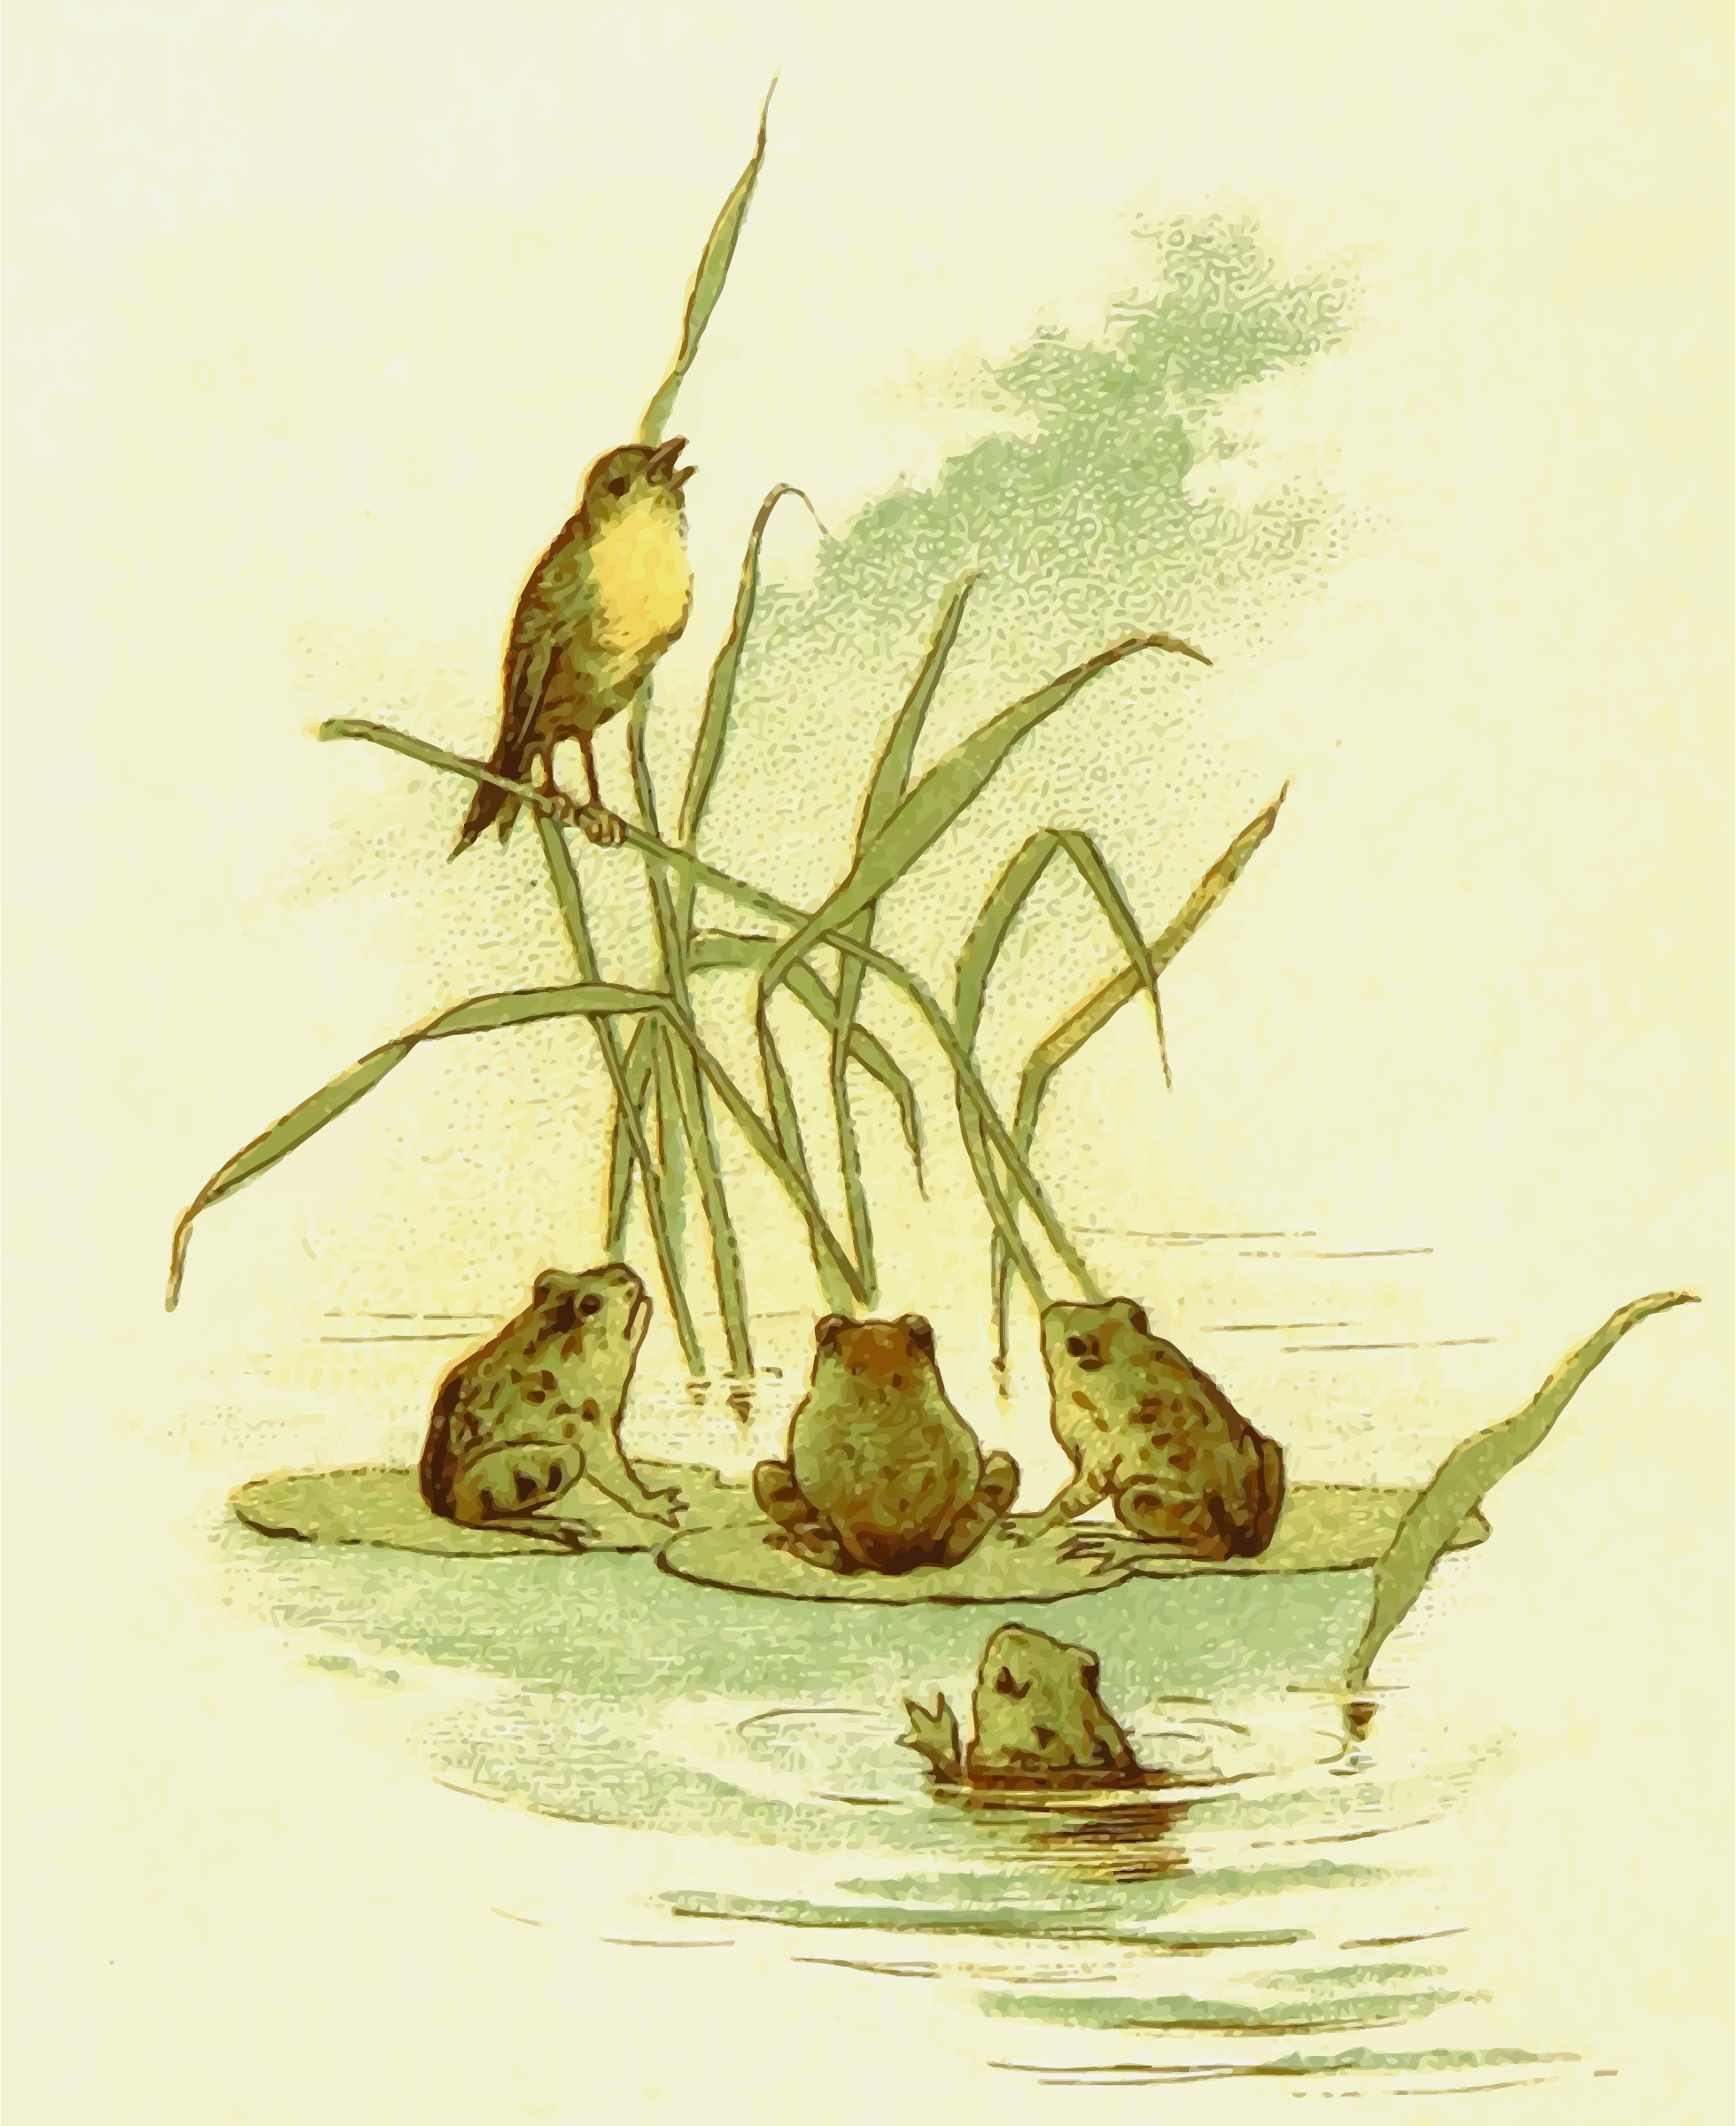 Bird with frogs by Firkin